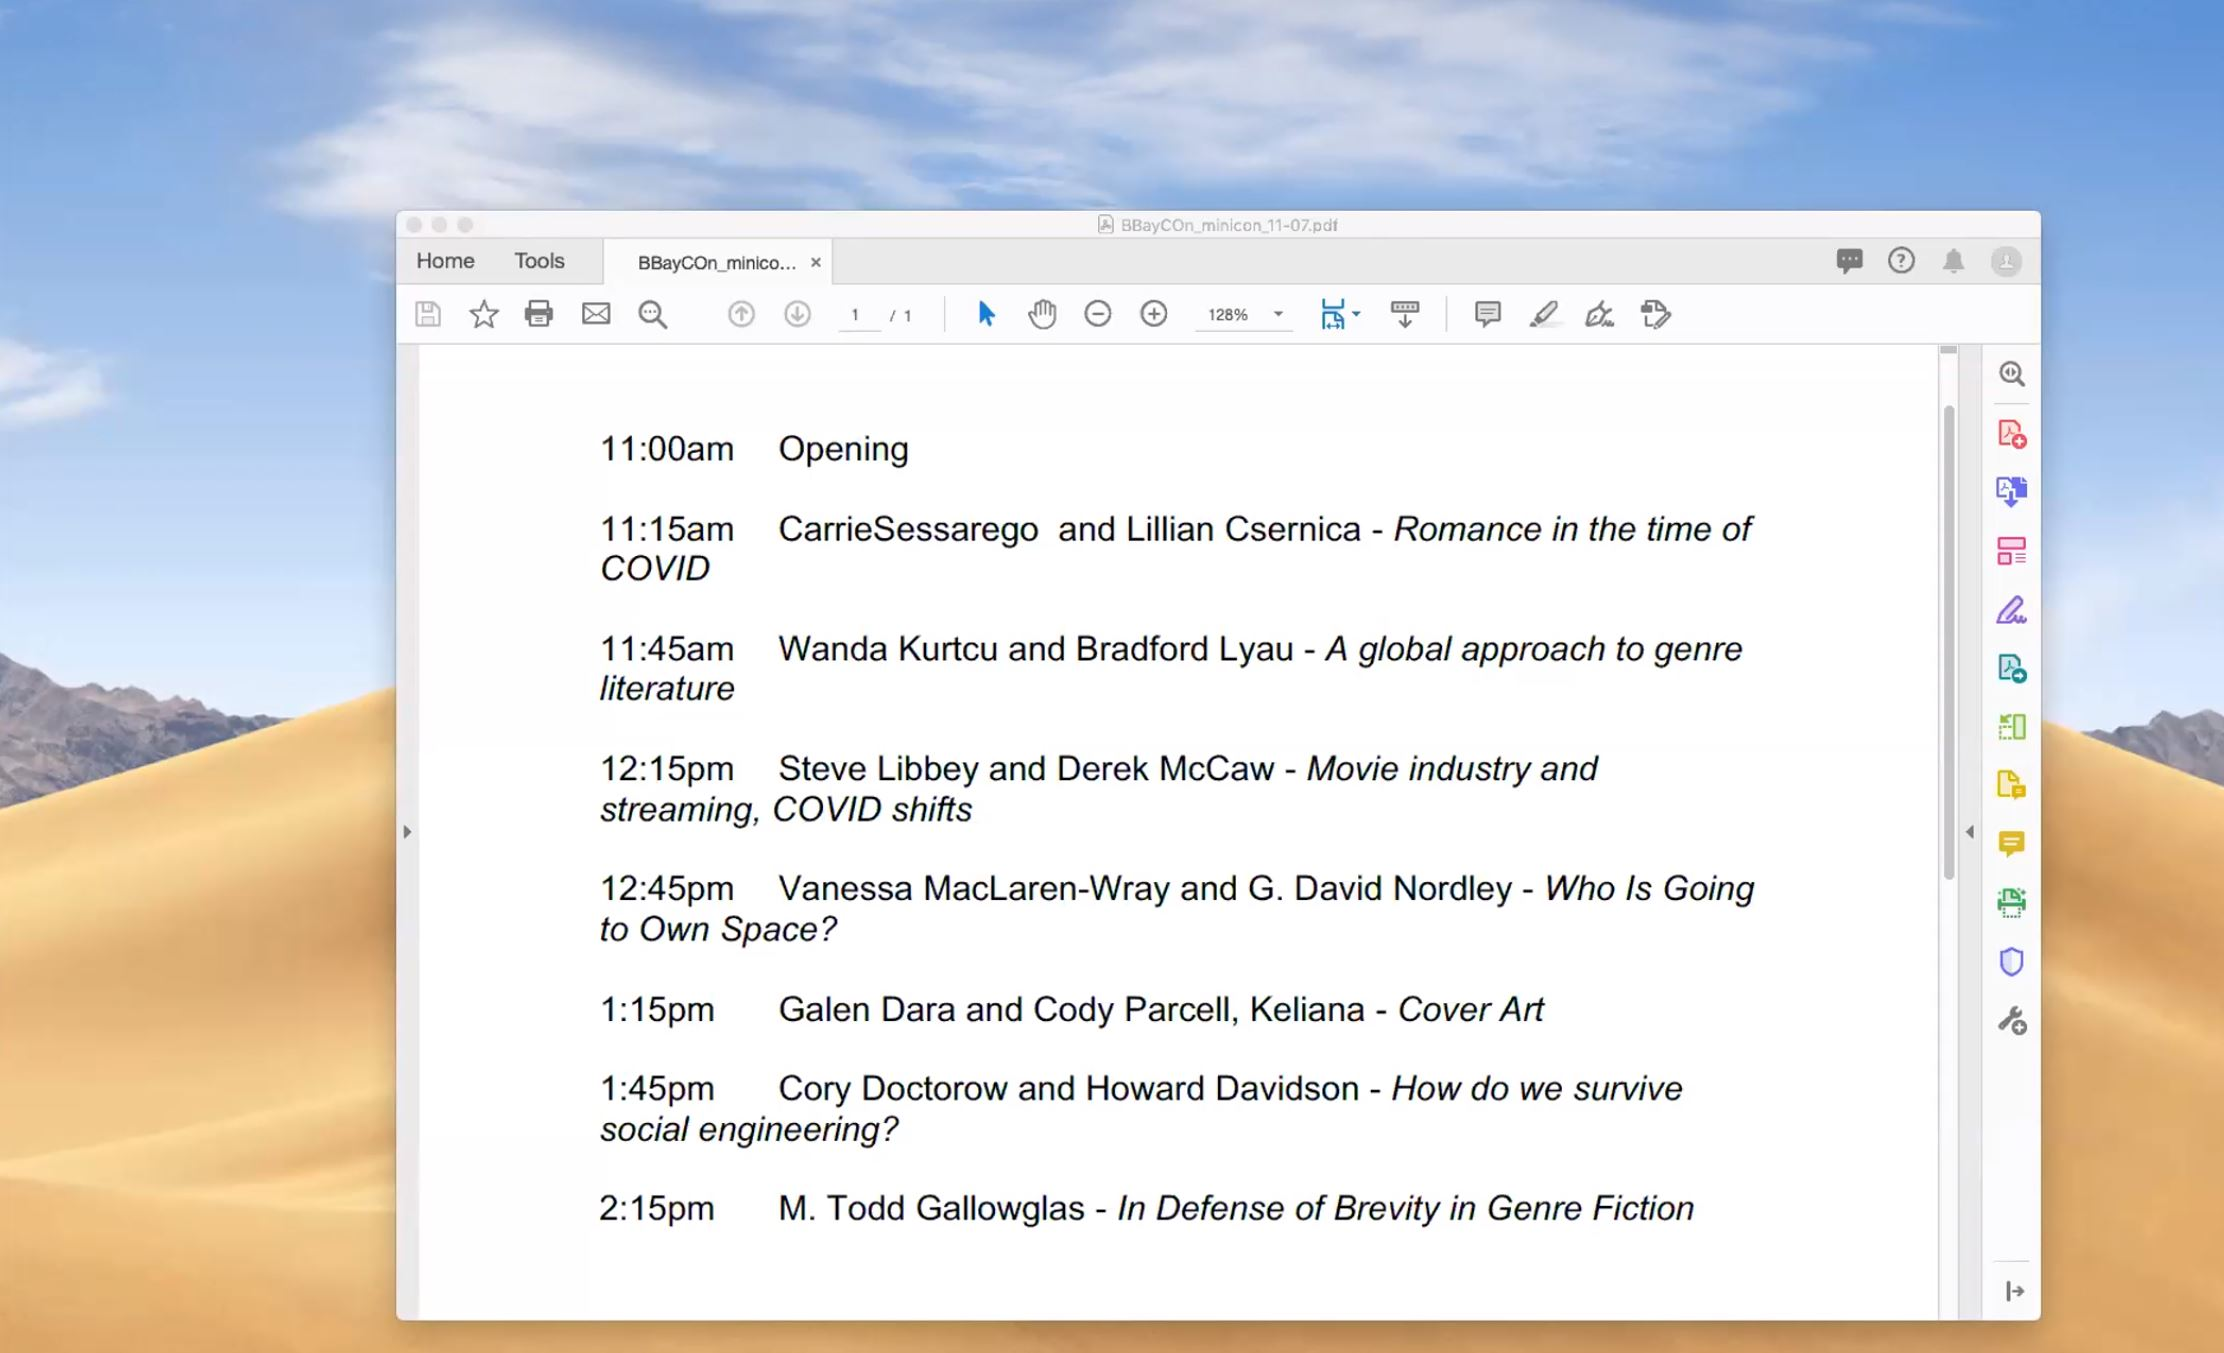 A screenshot showing a sand-dune scene with a blue sky, mostly hidden by the planned program of a BayCon mini-con, with Vanessa MacLaren-Wray and G. David Nordley at 12:45 pm, with Carrie Sessarego and Lilian Csernica presenting Romands in the time of COVID, Wanta Kurtcuand Bradford Lyau on A global approach to genre literature, Steve Libbey and Derek McCaw on Movie industry and streaming, Galen Dara, Cody Parcell, and Keliana on Cover art, Cory Doctorow and Howard Davidson on How do we survive social engineering, and M. Todd Gallowglas on In defense of Brevity in genre fiction.